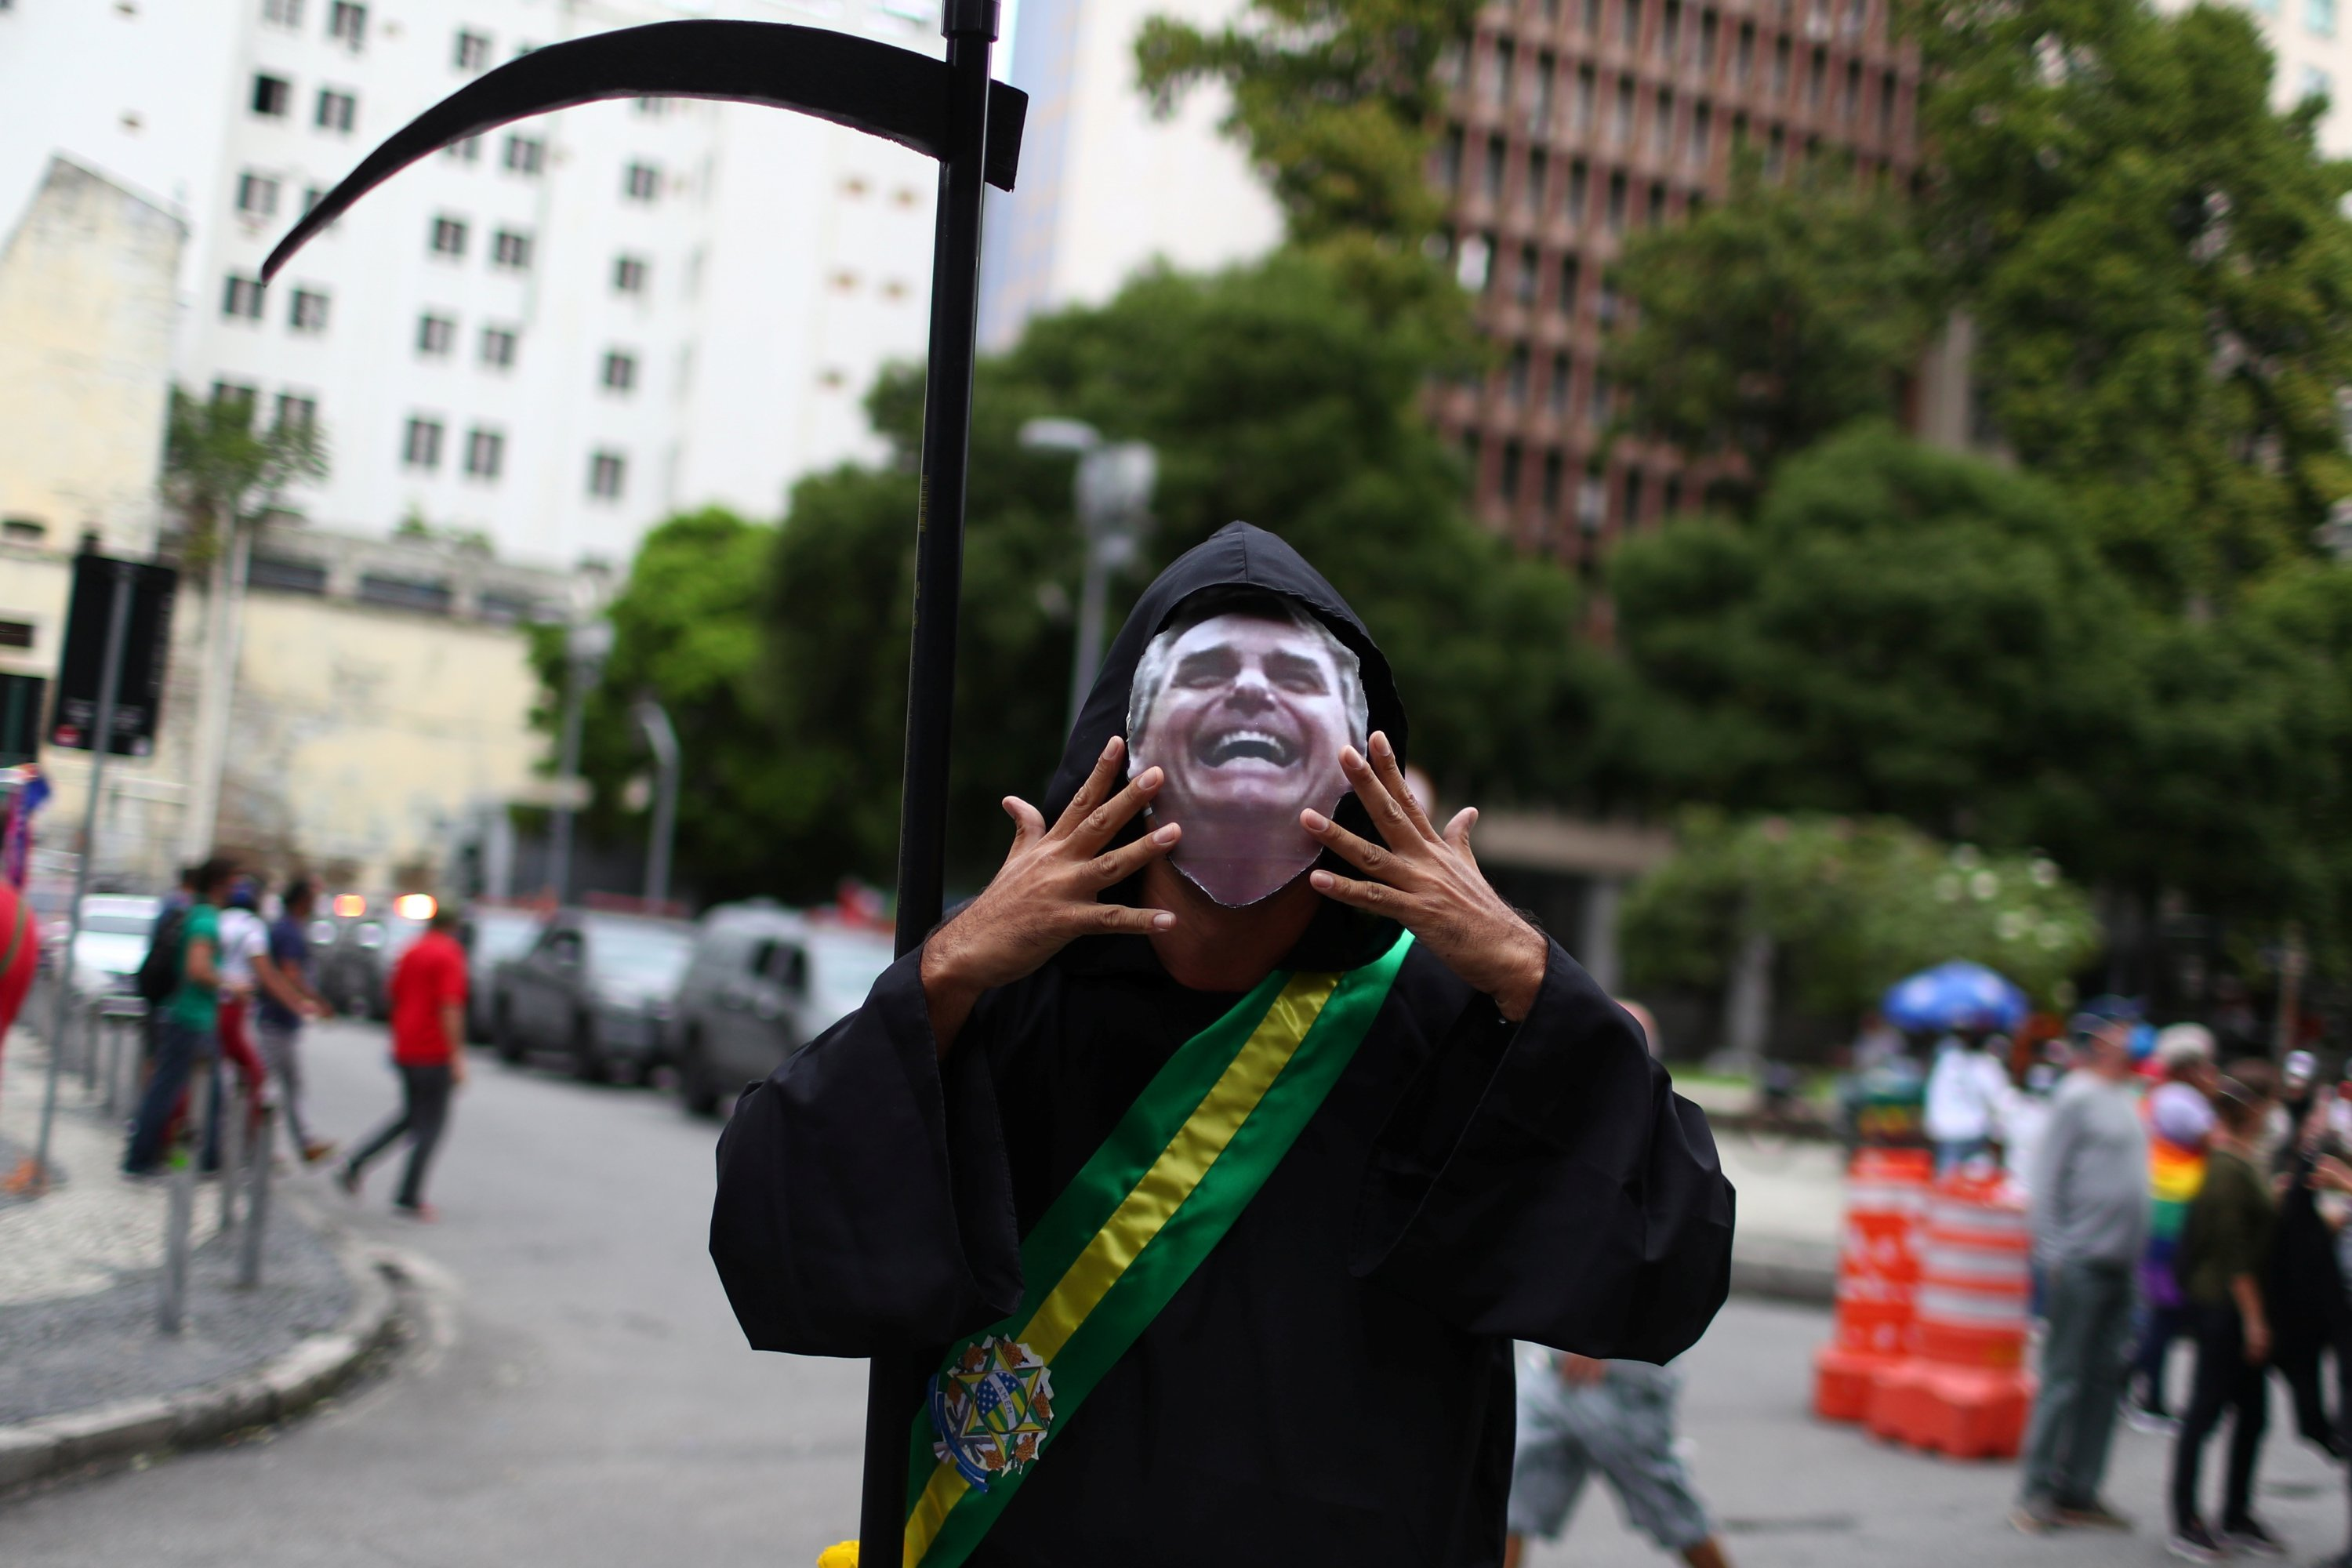 A person dressed up as the grim reaper attends a demonstration against Brazil's President Jair Bolsonaro's handling of the COVID-19 pandemic and to impeach him, in Rio de Janeiro, Brazil, June 19, 2021. (Reuters Photo)